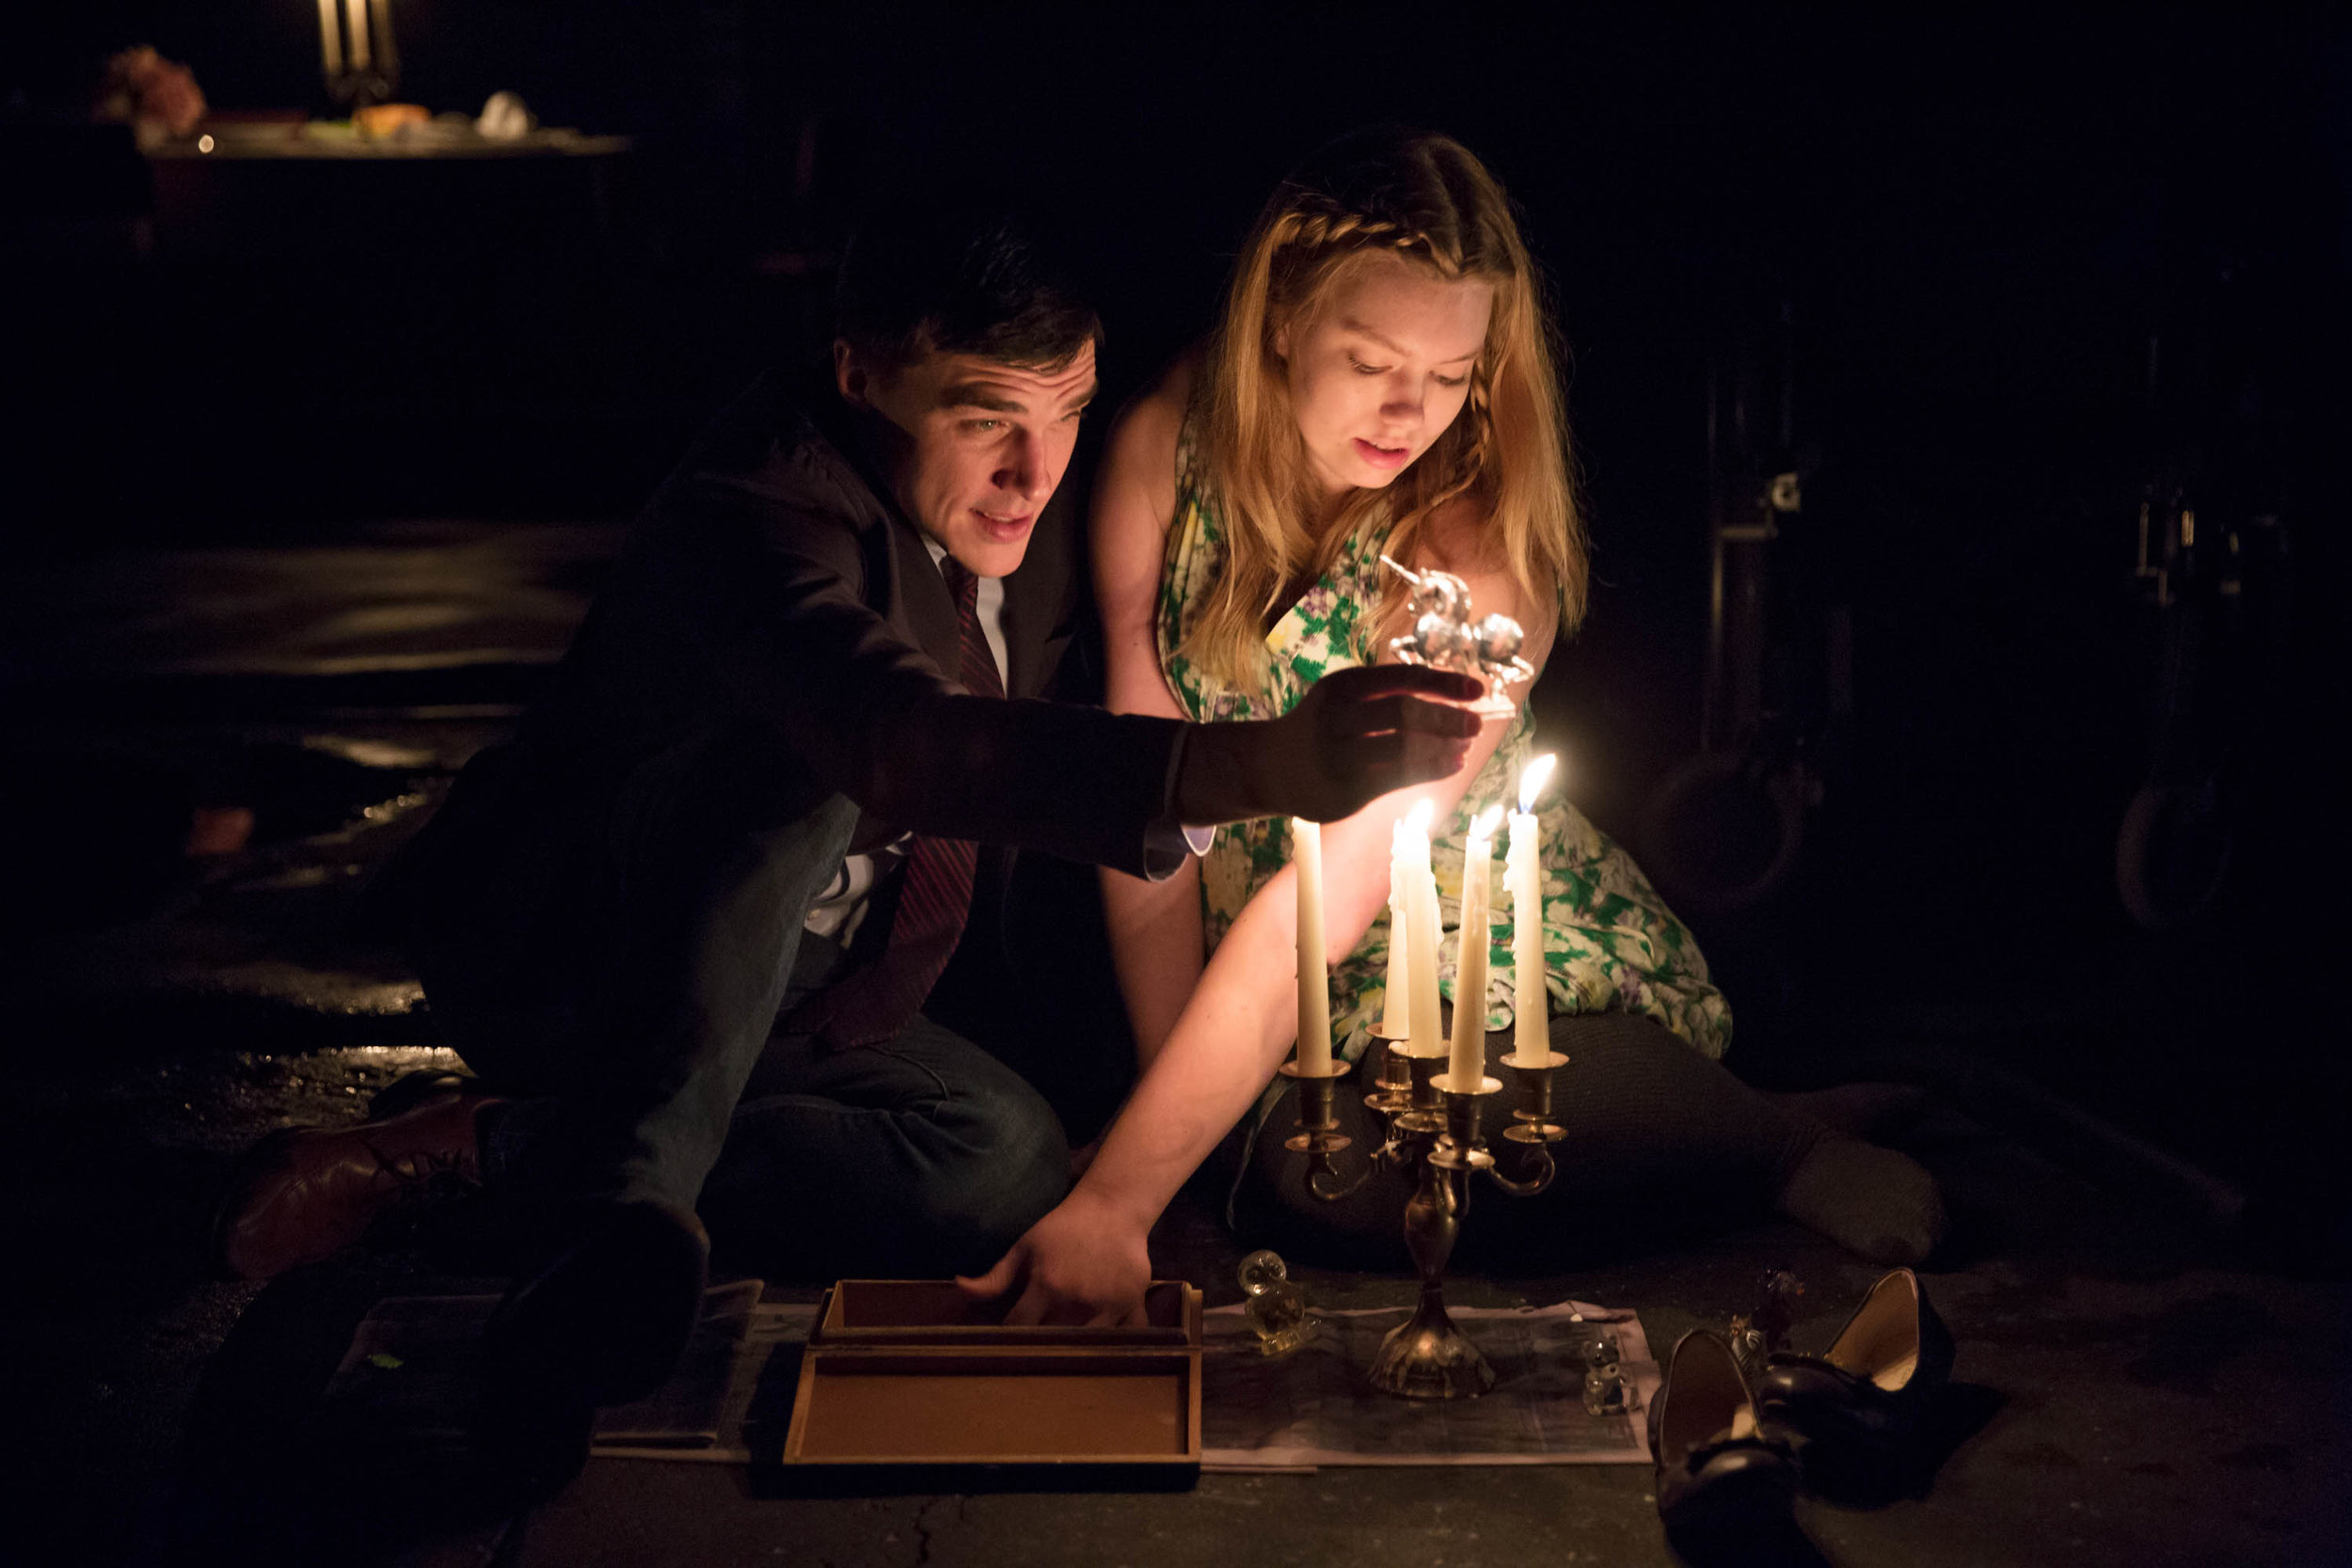 glass-menagerie-production-photo-broadway-2017-finn-wittrock-and-madison-ferris-in-the-glass-menagerie-photo-by-julieta-cervantes-2-hr.jpg